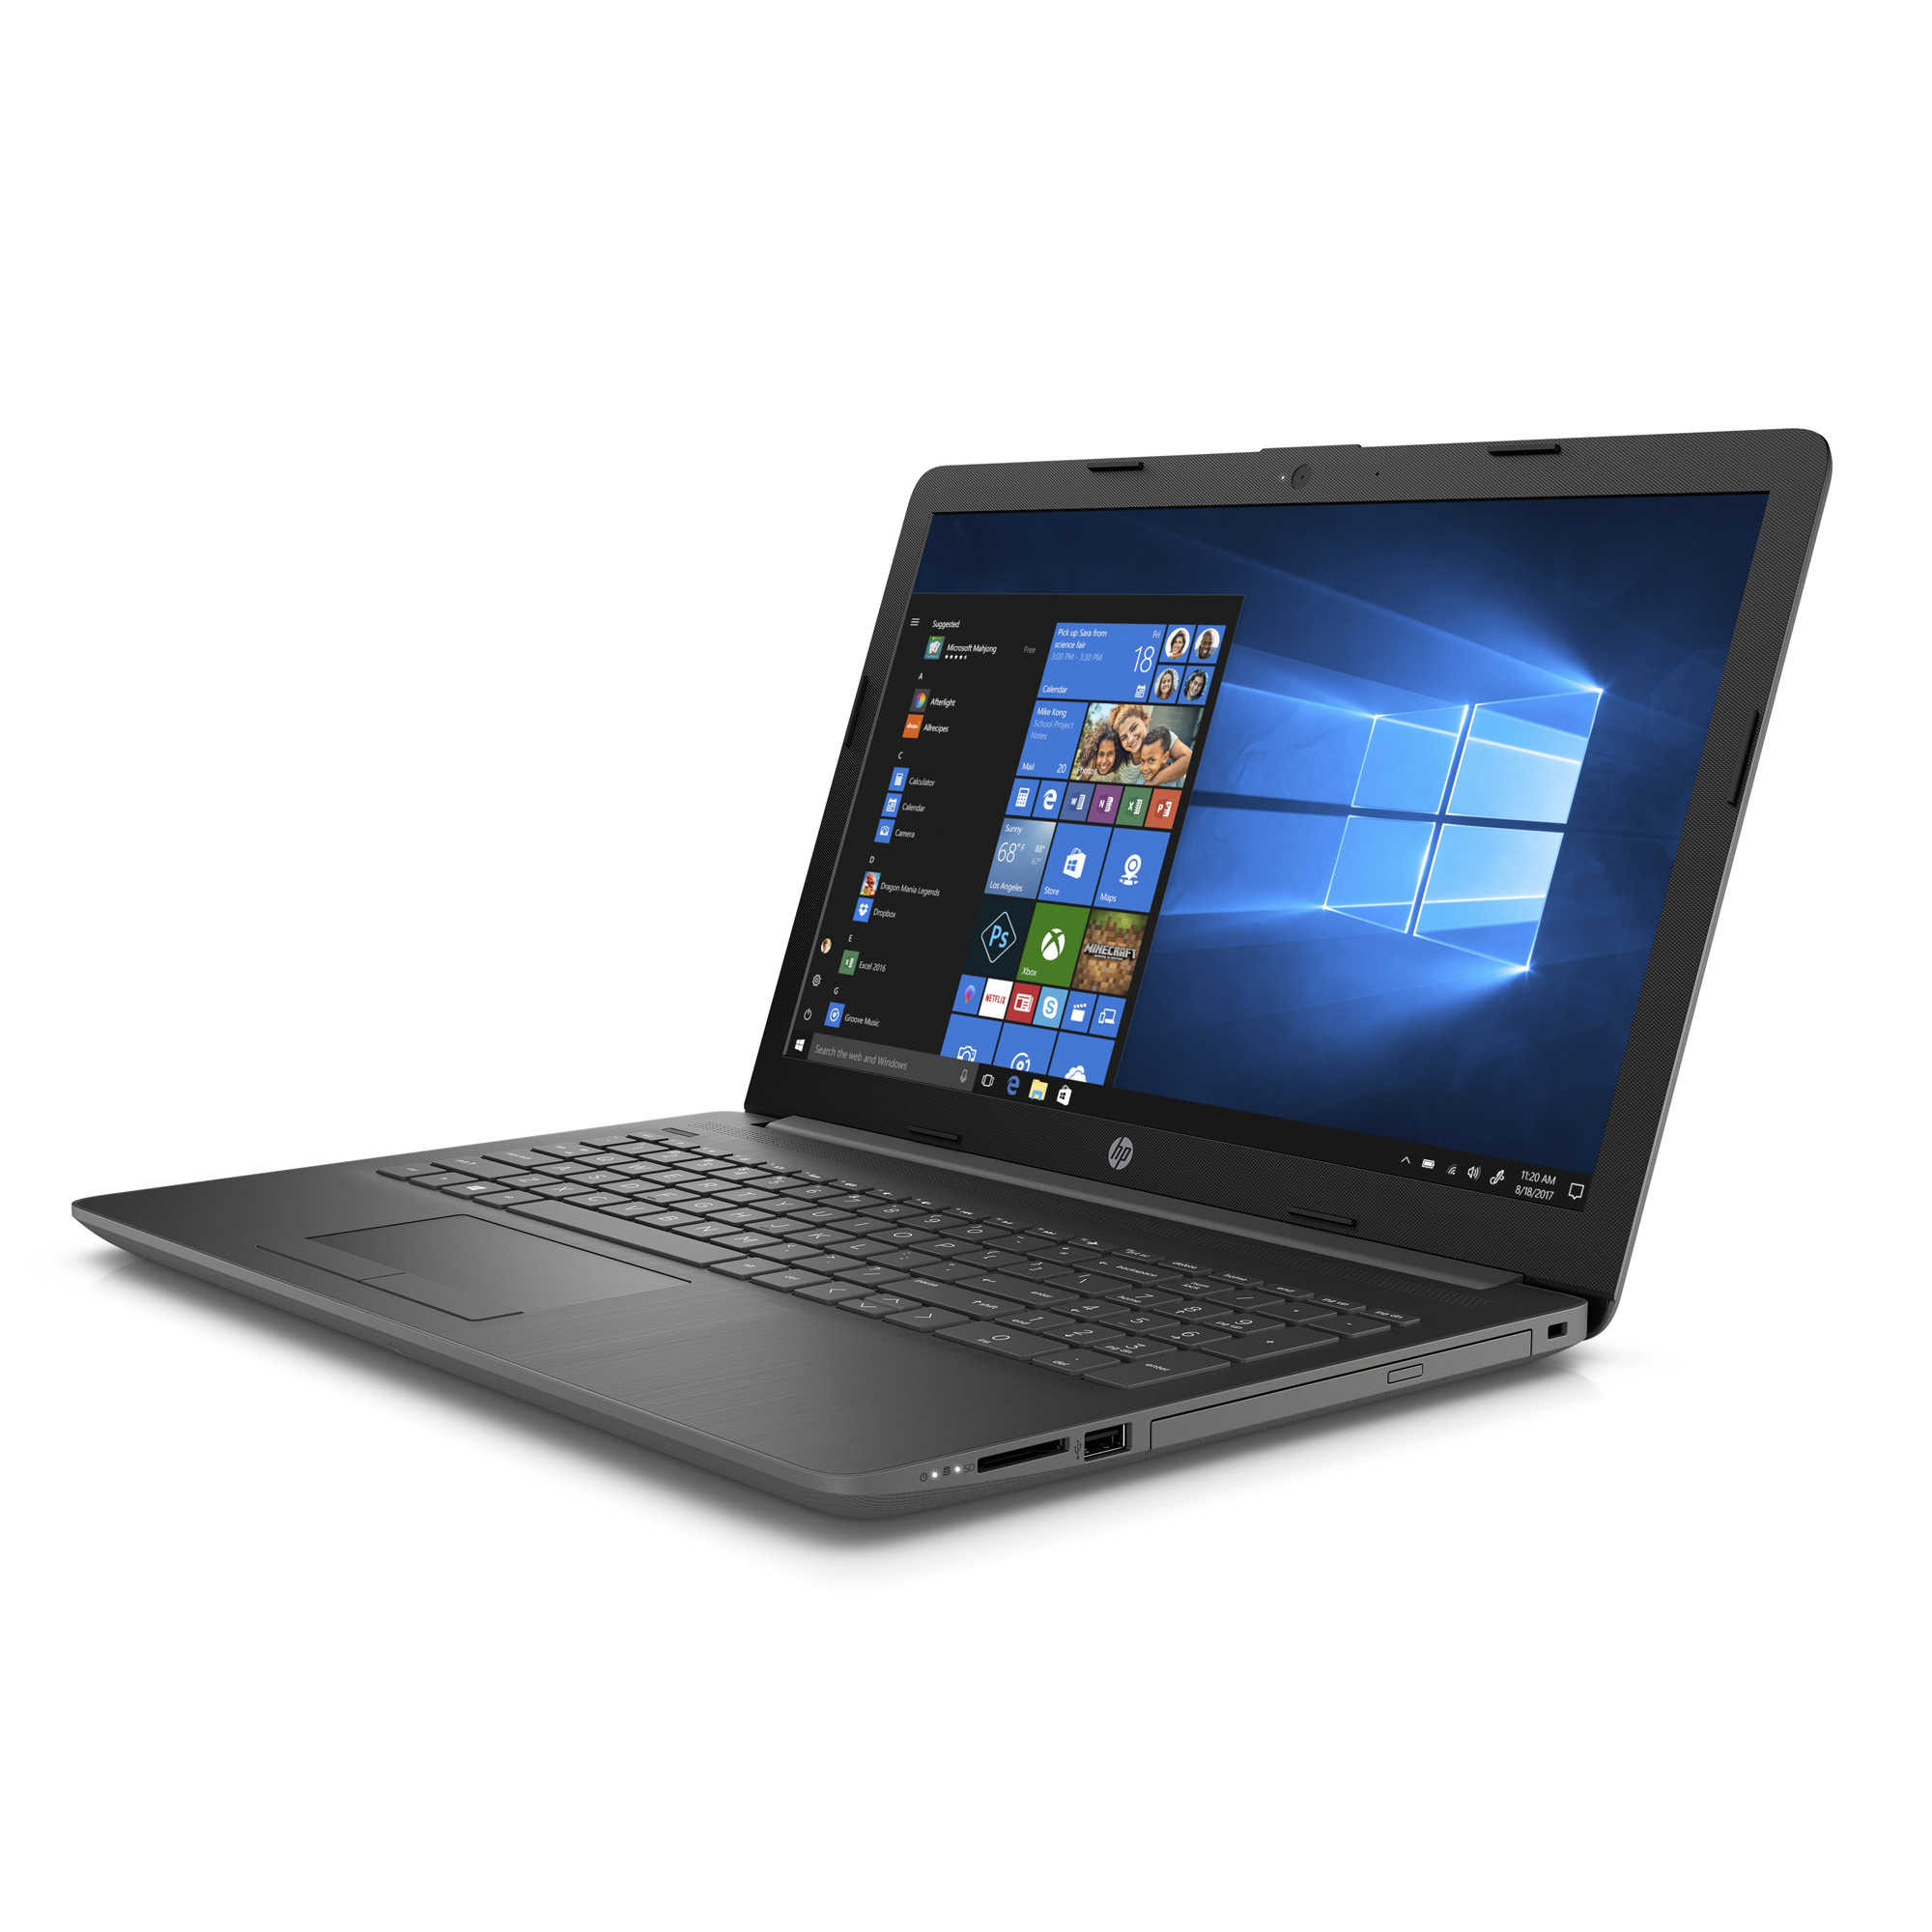 HP 15-DB0020NR, Smoke Gray 15.6 inch Laptop, Windows 10, A6-9225 DC Processor, 4GB memory, 1TB Hard Drive, UMA Graphics, DVD